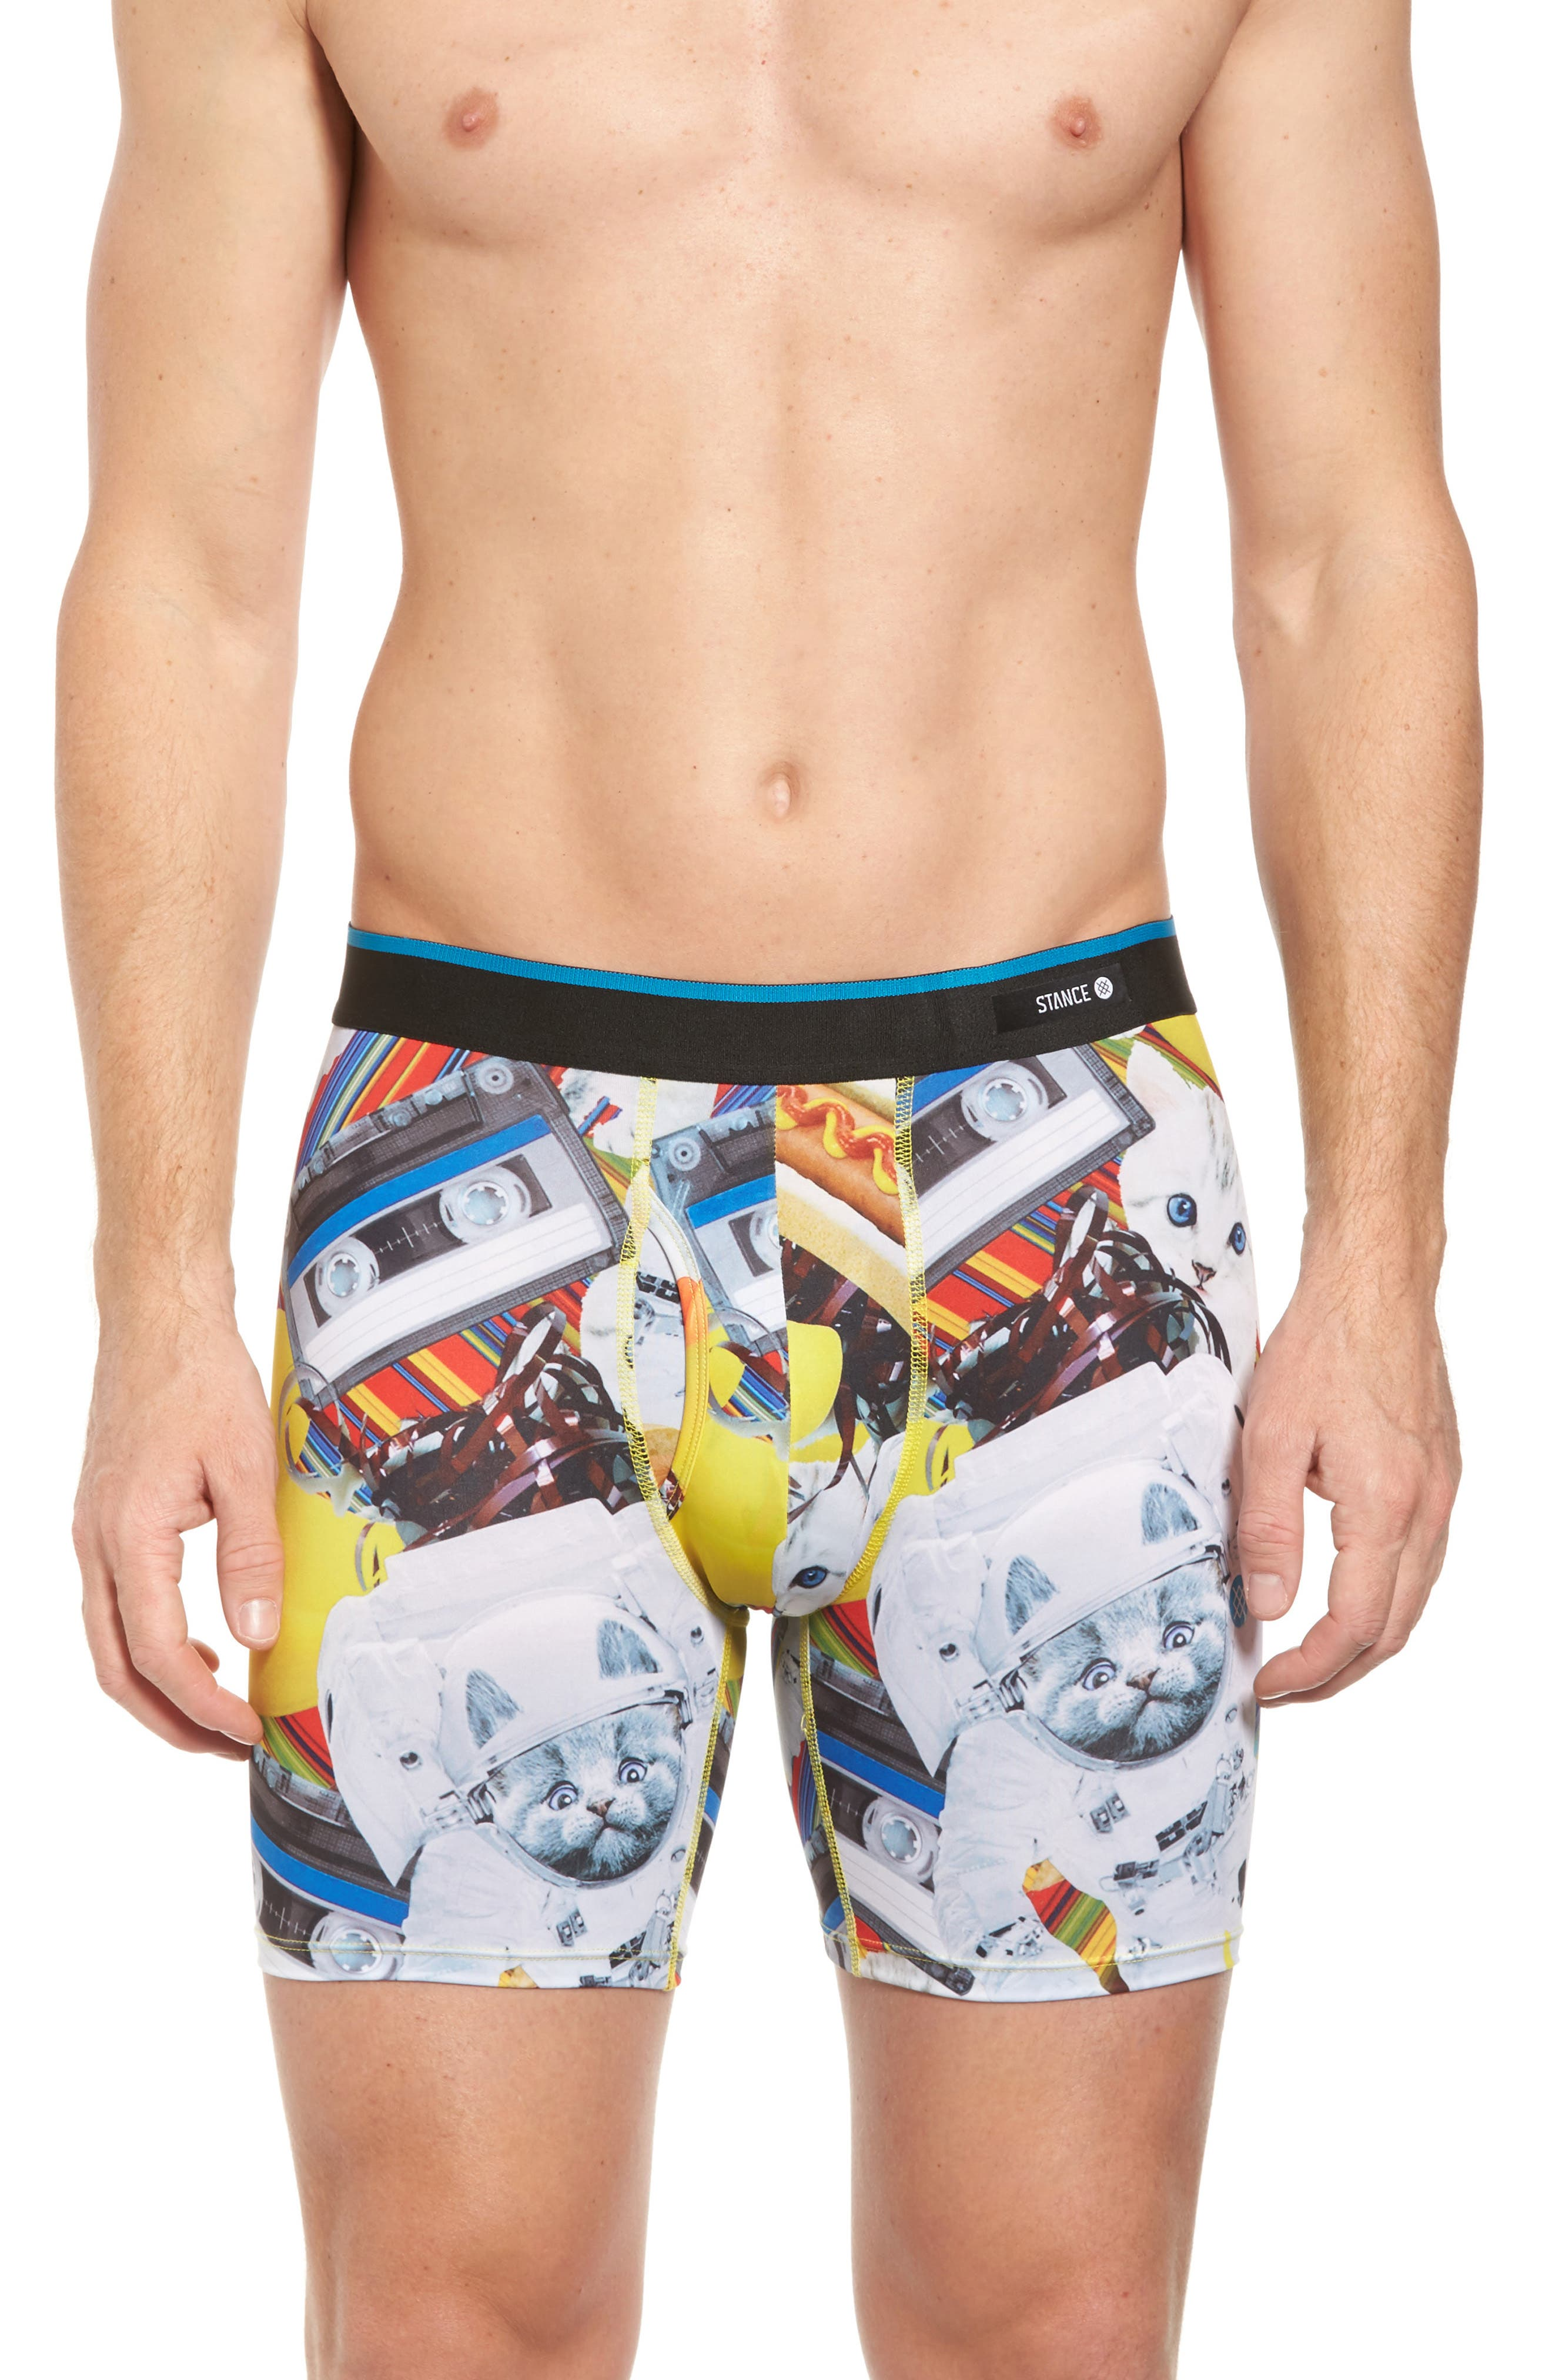 Castronaut Boxer Briefs,                         Main,                         color, Yellow Multi